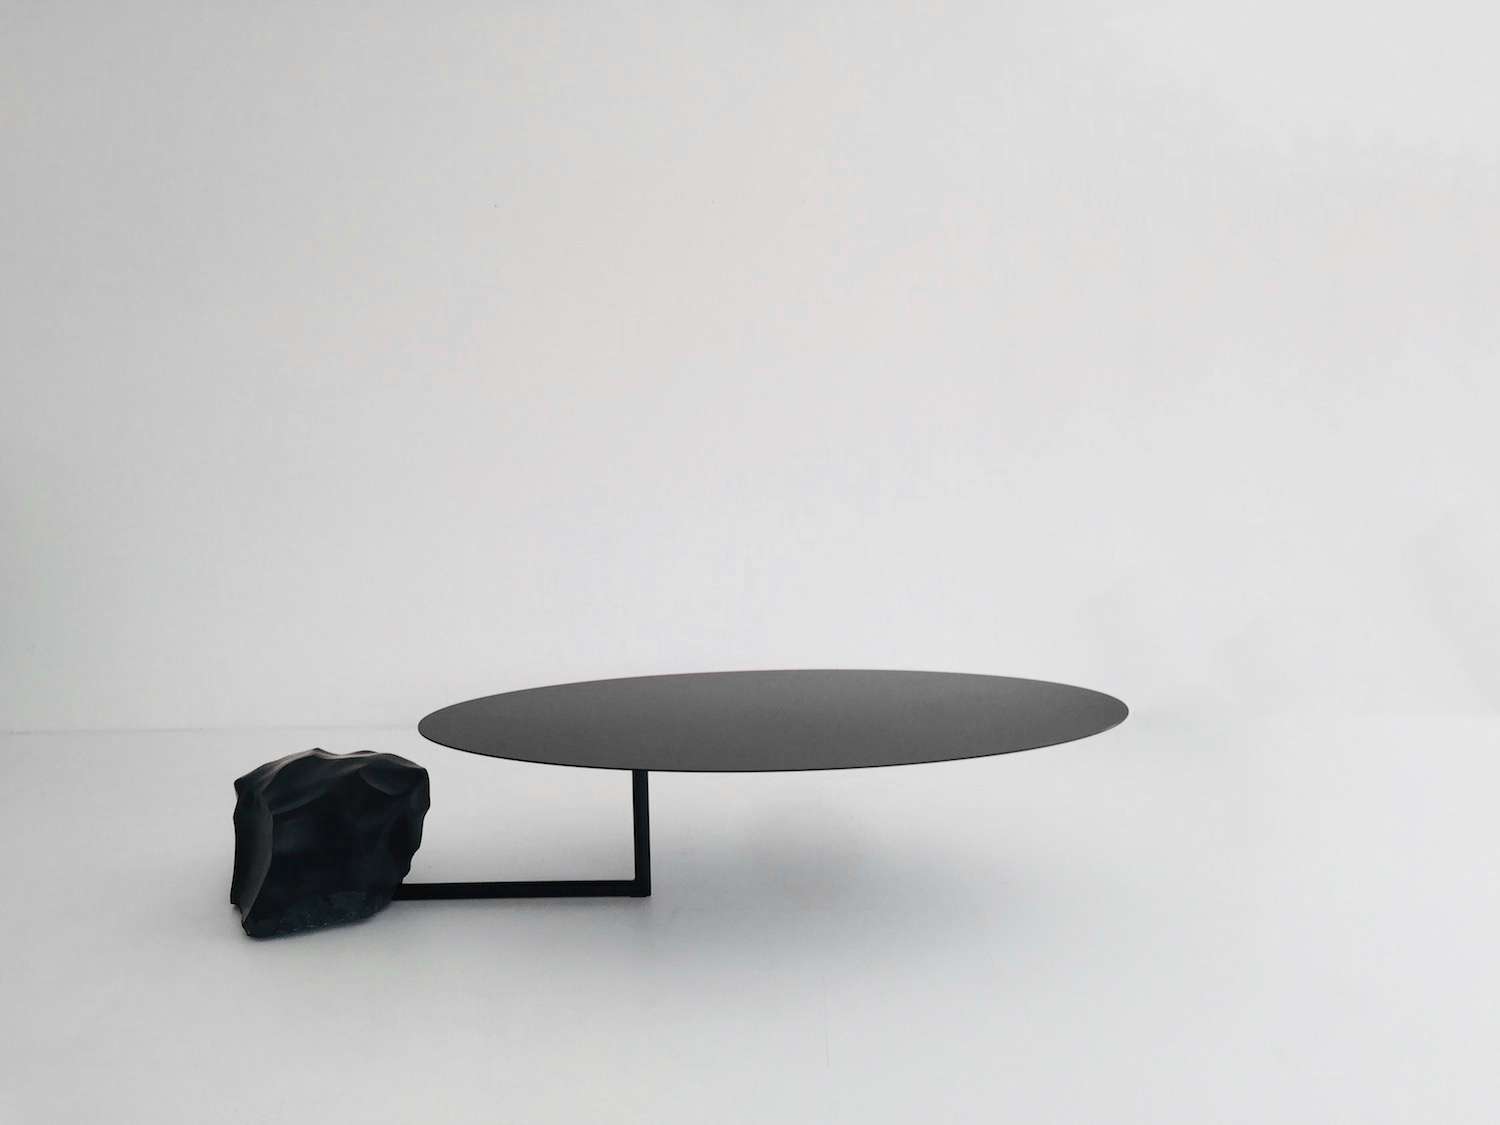 110 kgs Coffee Table by Max Enrich